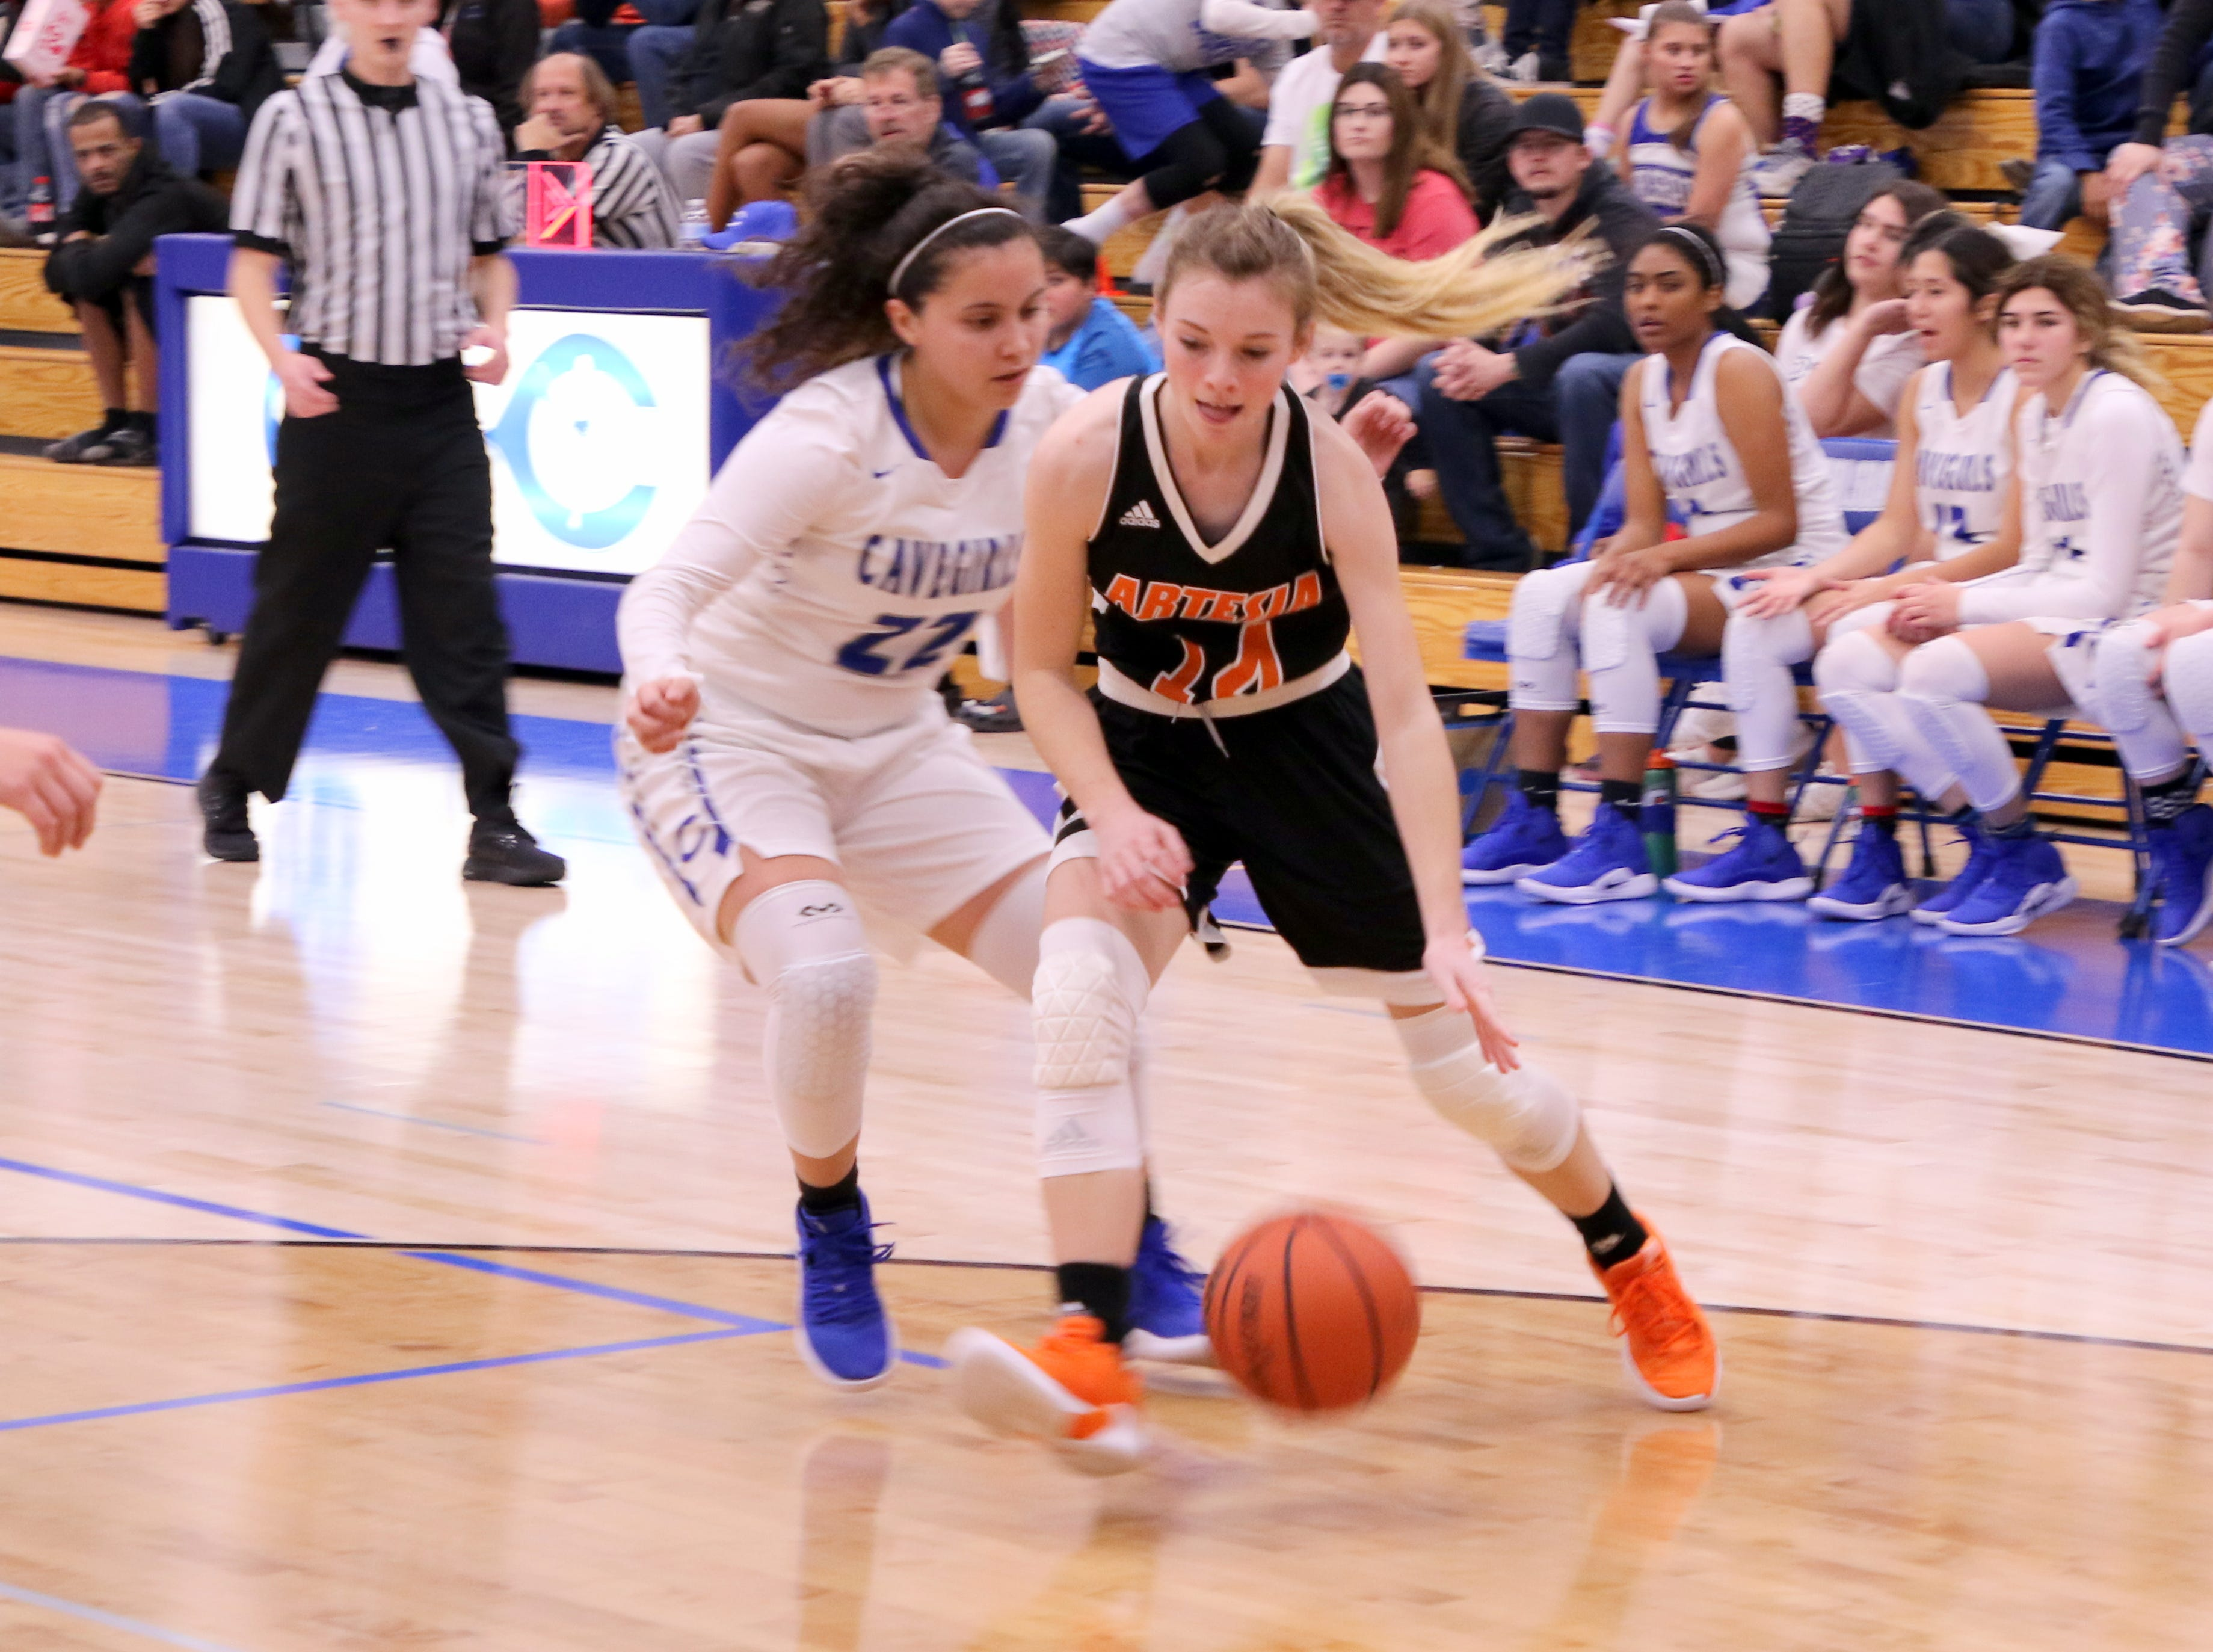 Artesia's Brehnan Davis (14) drives against Carlsbad's Nyah Chacon (22) during Tuesday's game. Davis finished with eight points.